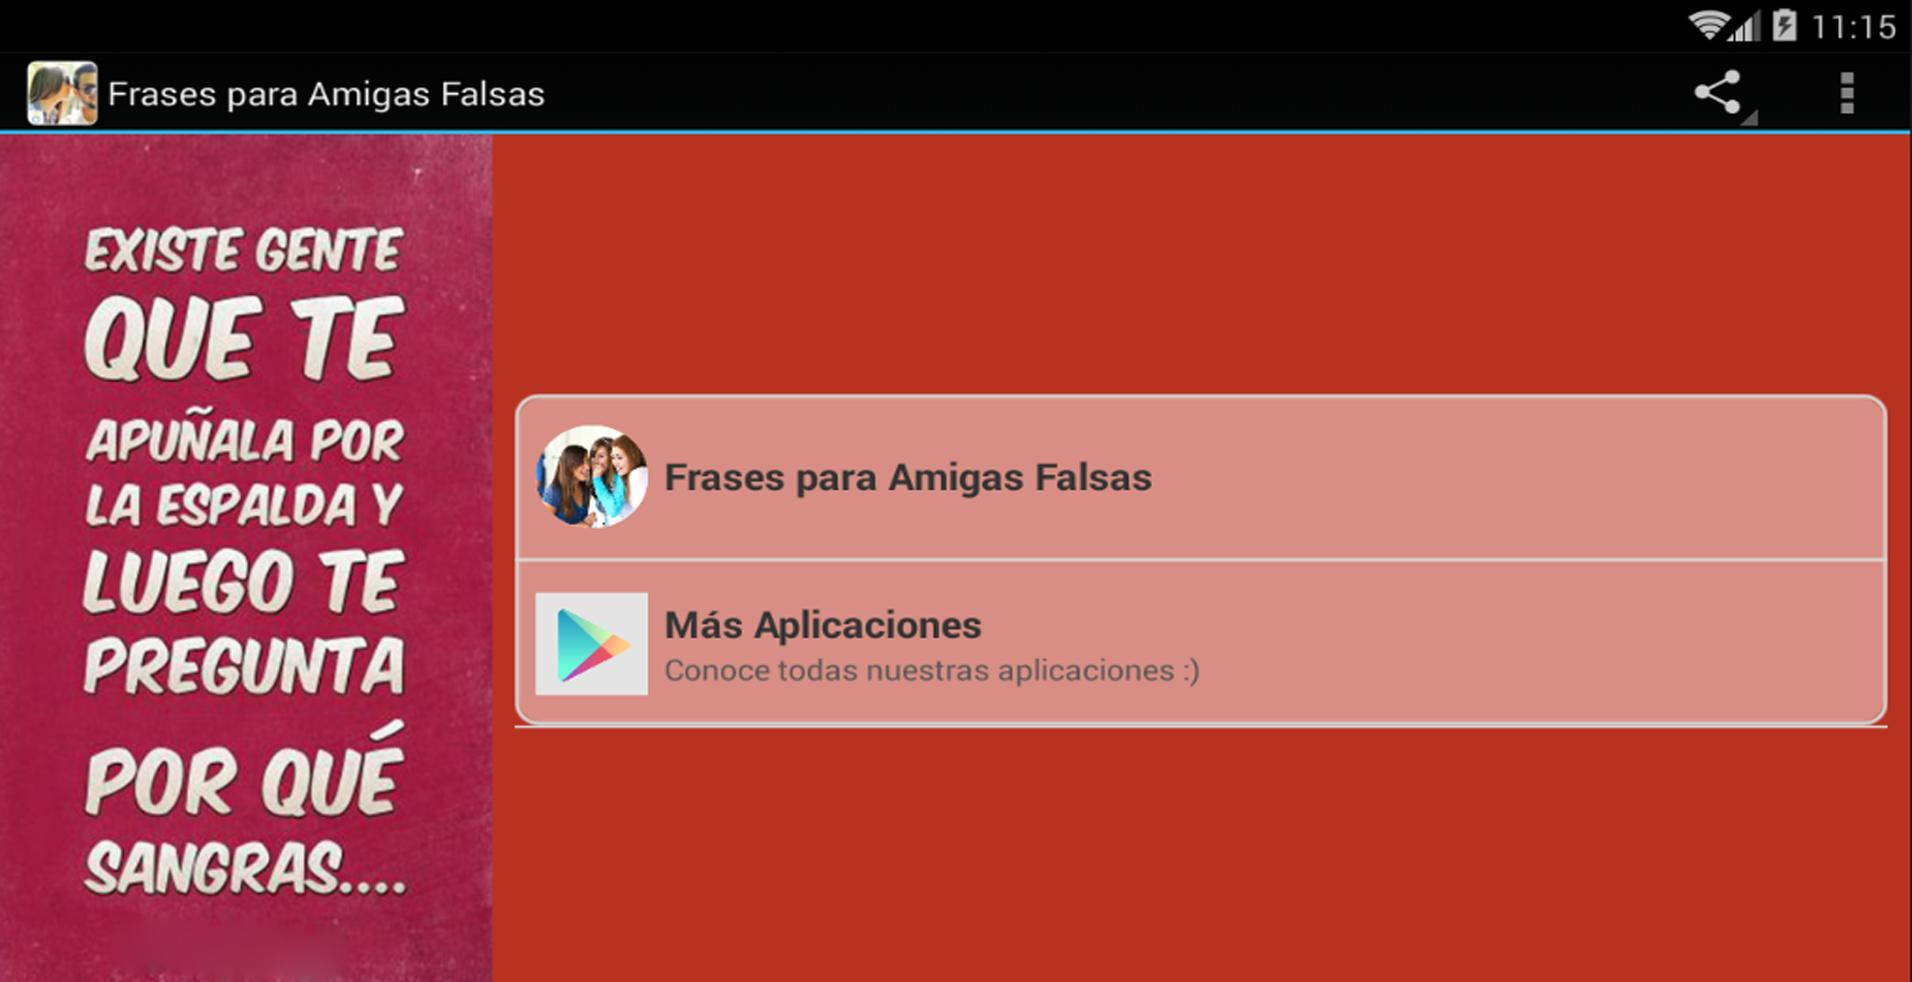 Frases Para Amigas Falsas For Android Apk Download